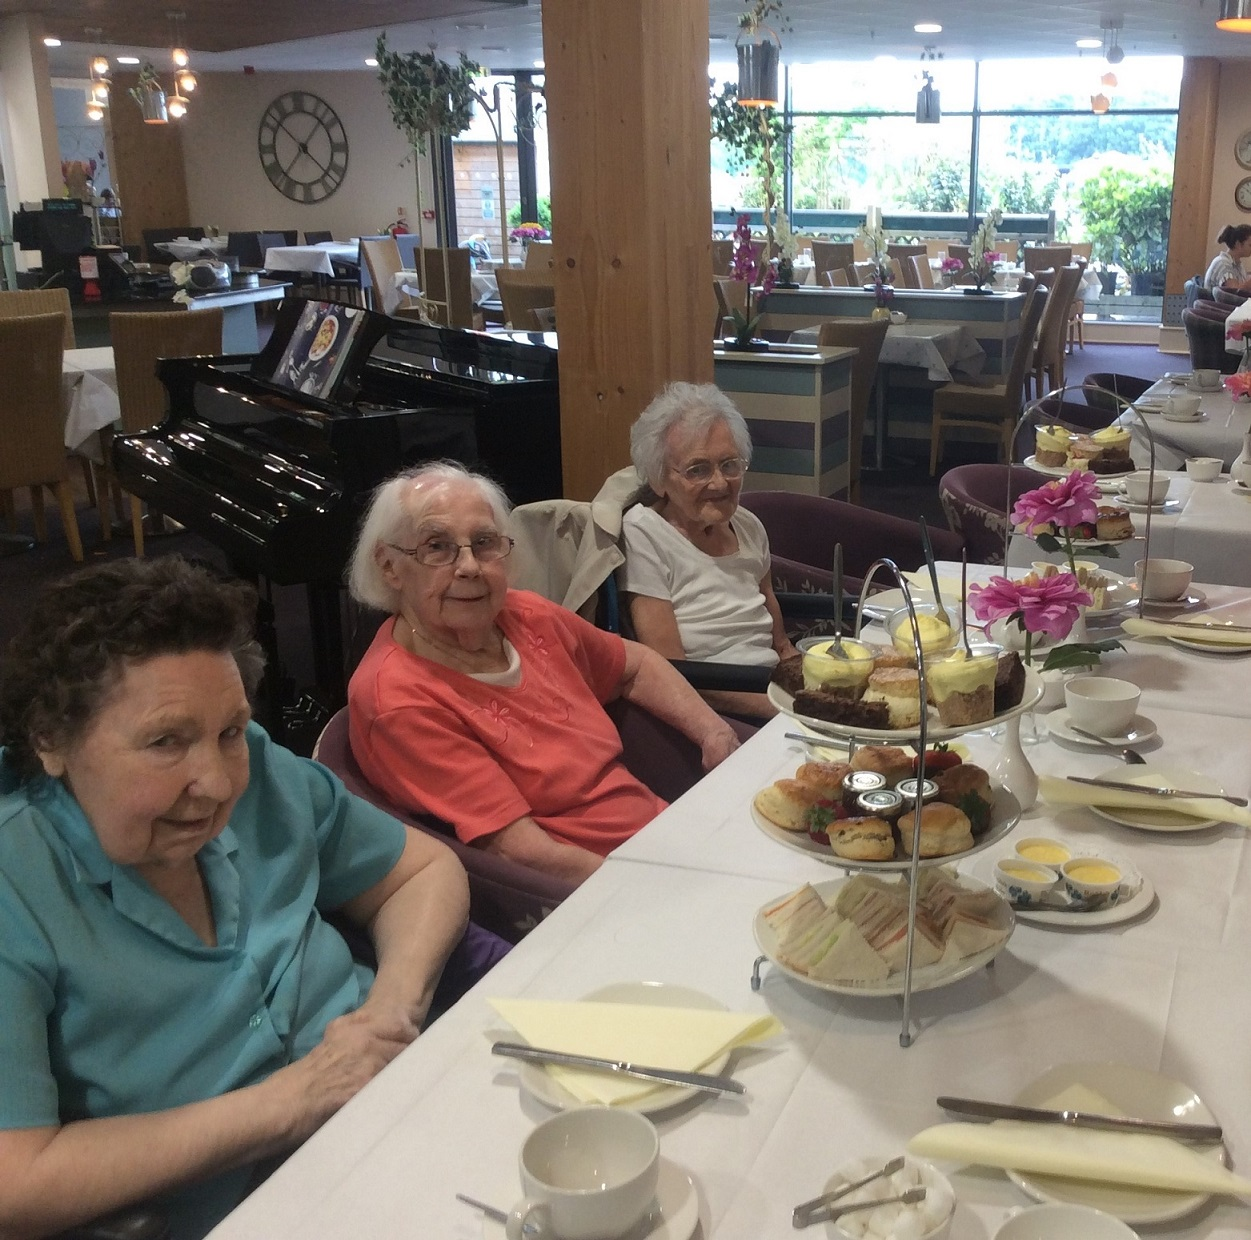 Residents Julie Lee, Florrie Lockett and Trudy Charnock enjoying their afternoon tea